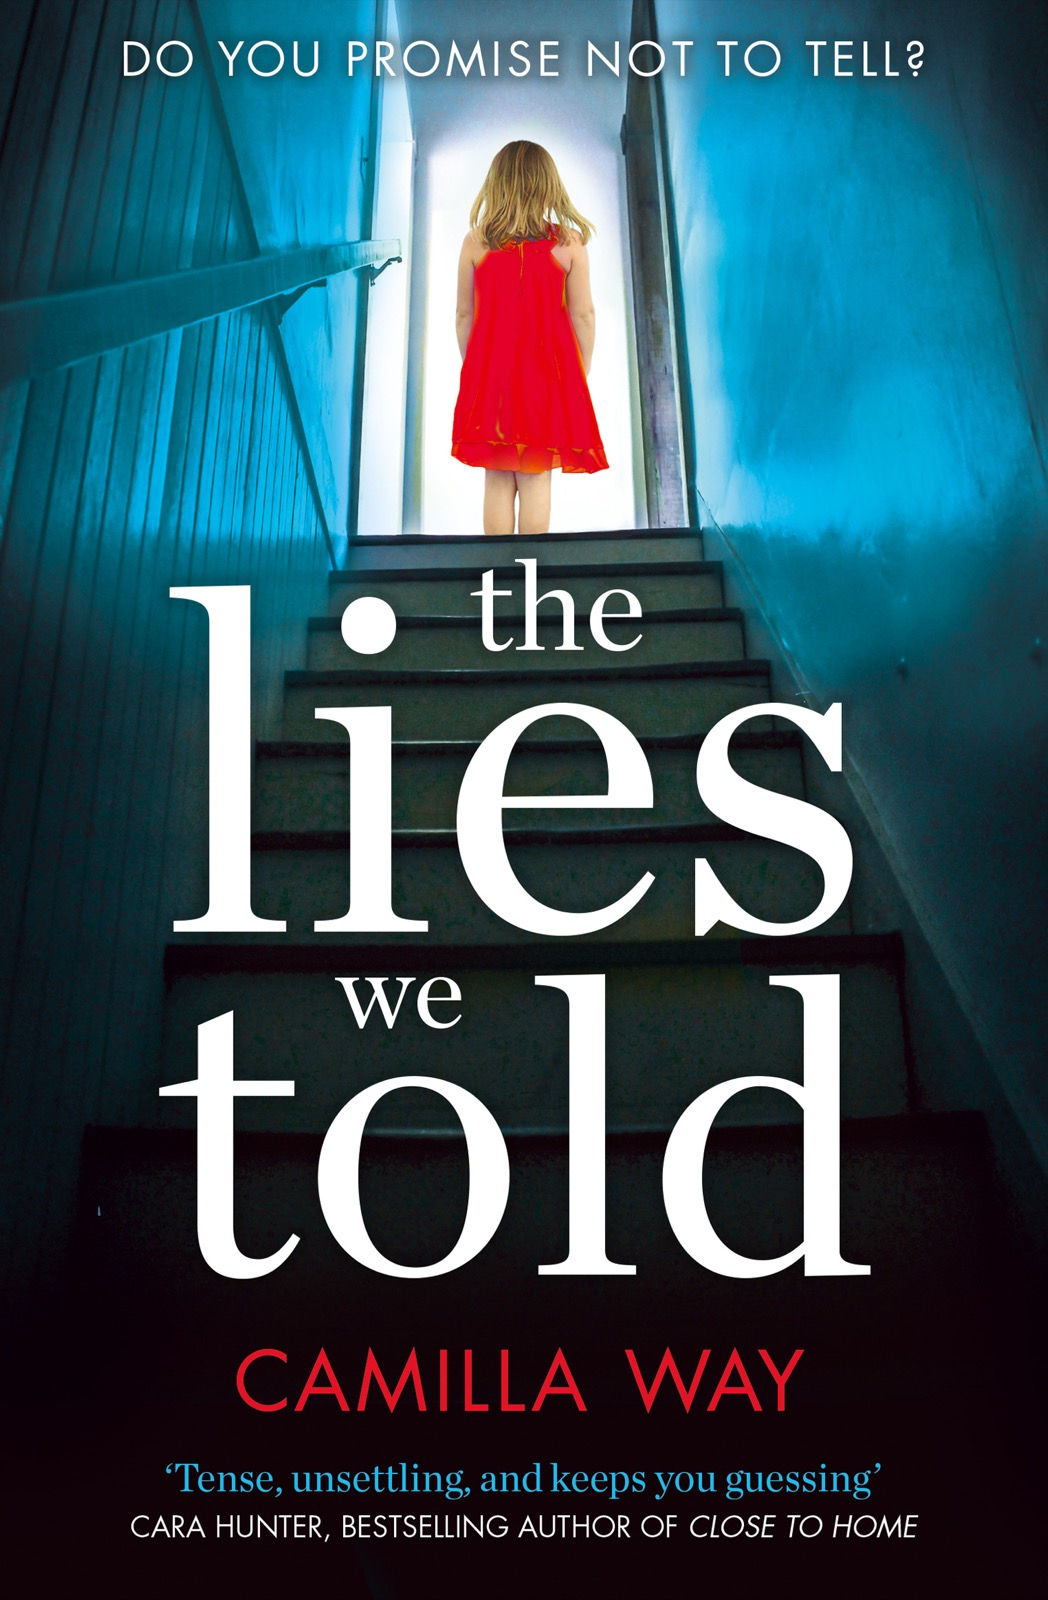 Camilla Way The Lies We Told: The exciting new psychological thriller from the bestselling author of Watching Edie камни istone the way we were furong серьги